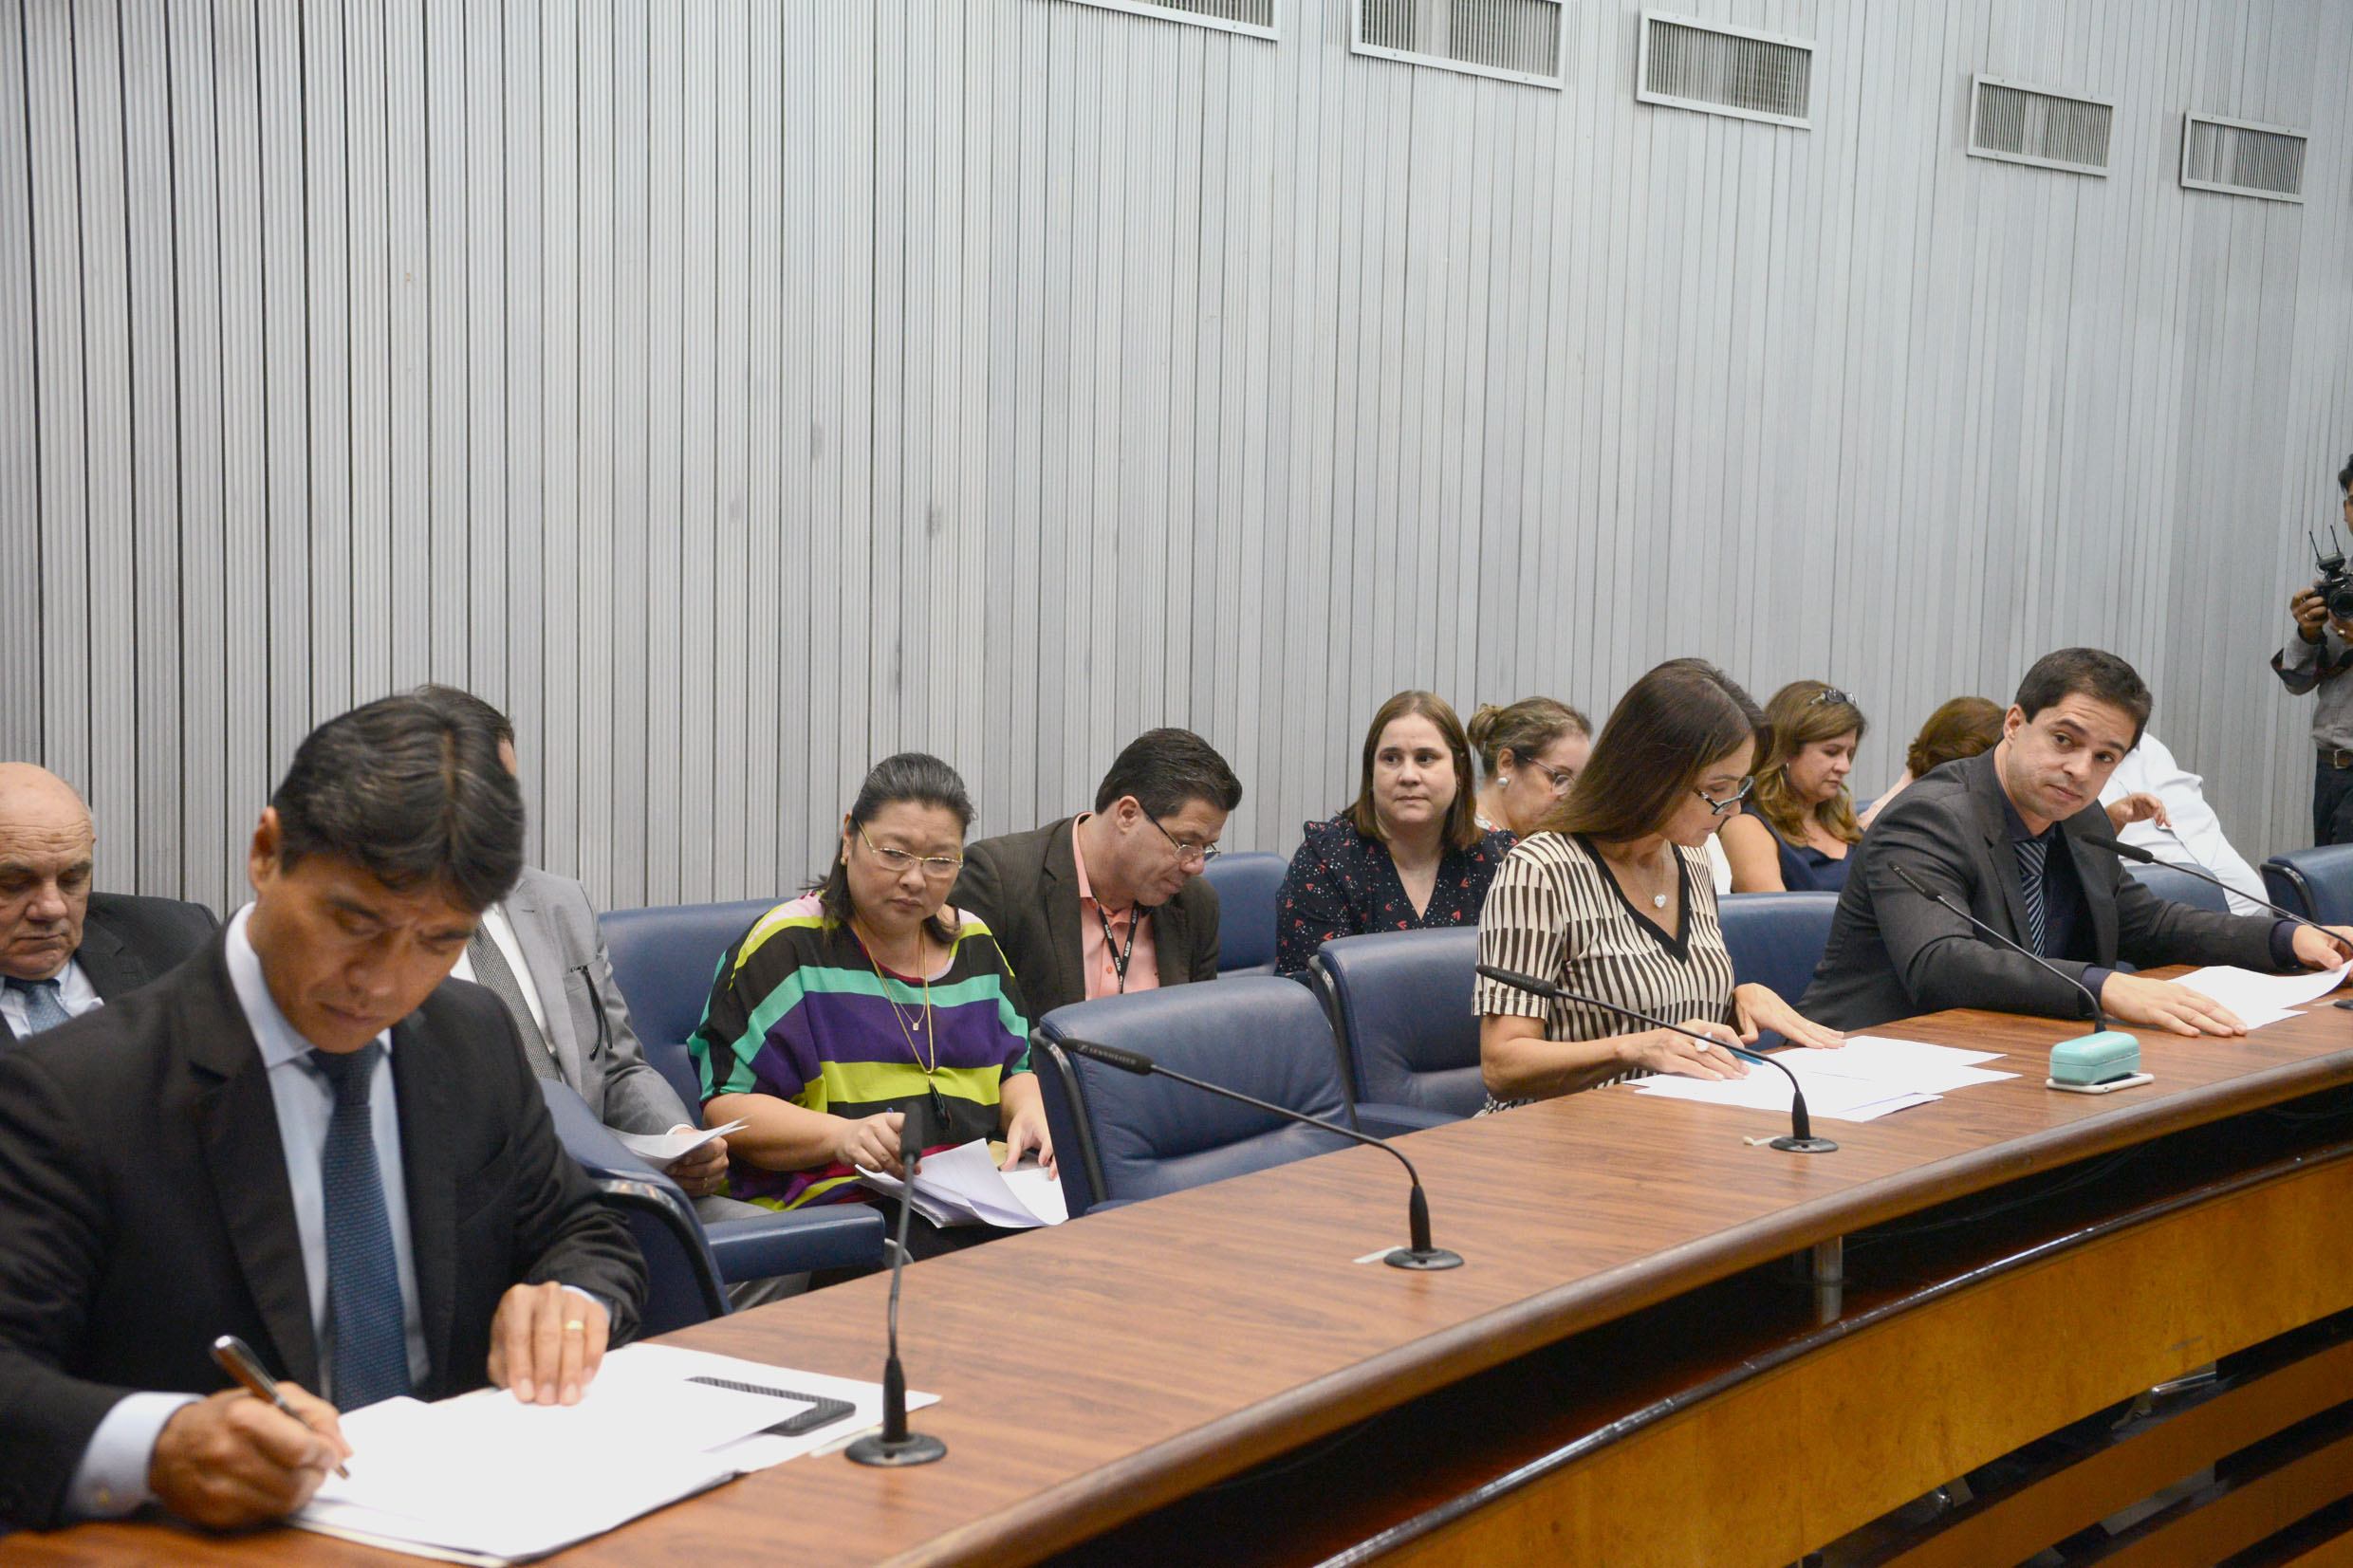 Parlamentares na comissão<a style='float:right' href='https://www3.al.sp.gov.br/repositorio/noticia/N-03-2019/fg231007.jpg' target=_blank><img src='/_img/material-file-download-white.png' width='14px' alt='Clique para baixar a imagem'></a>